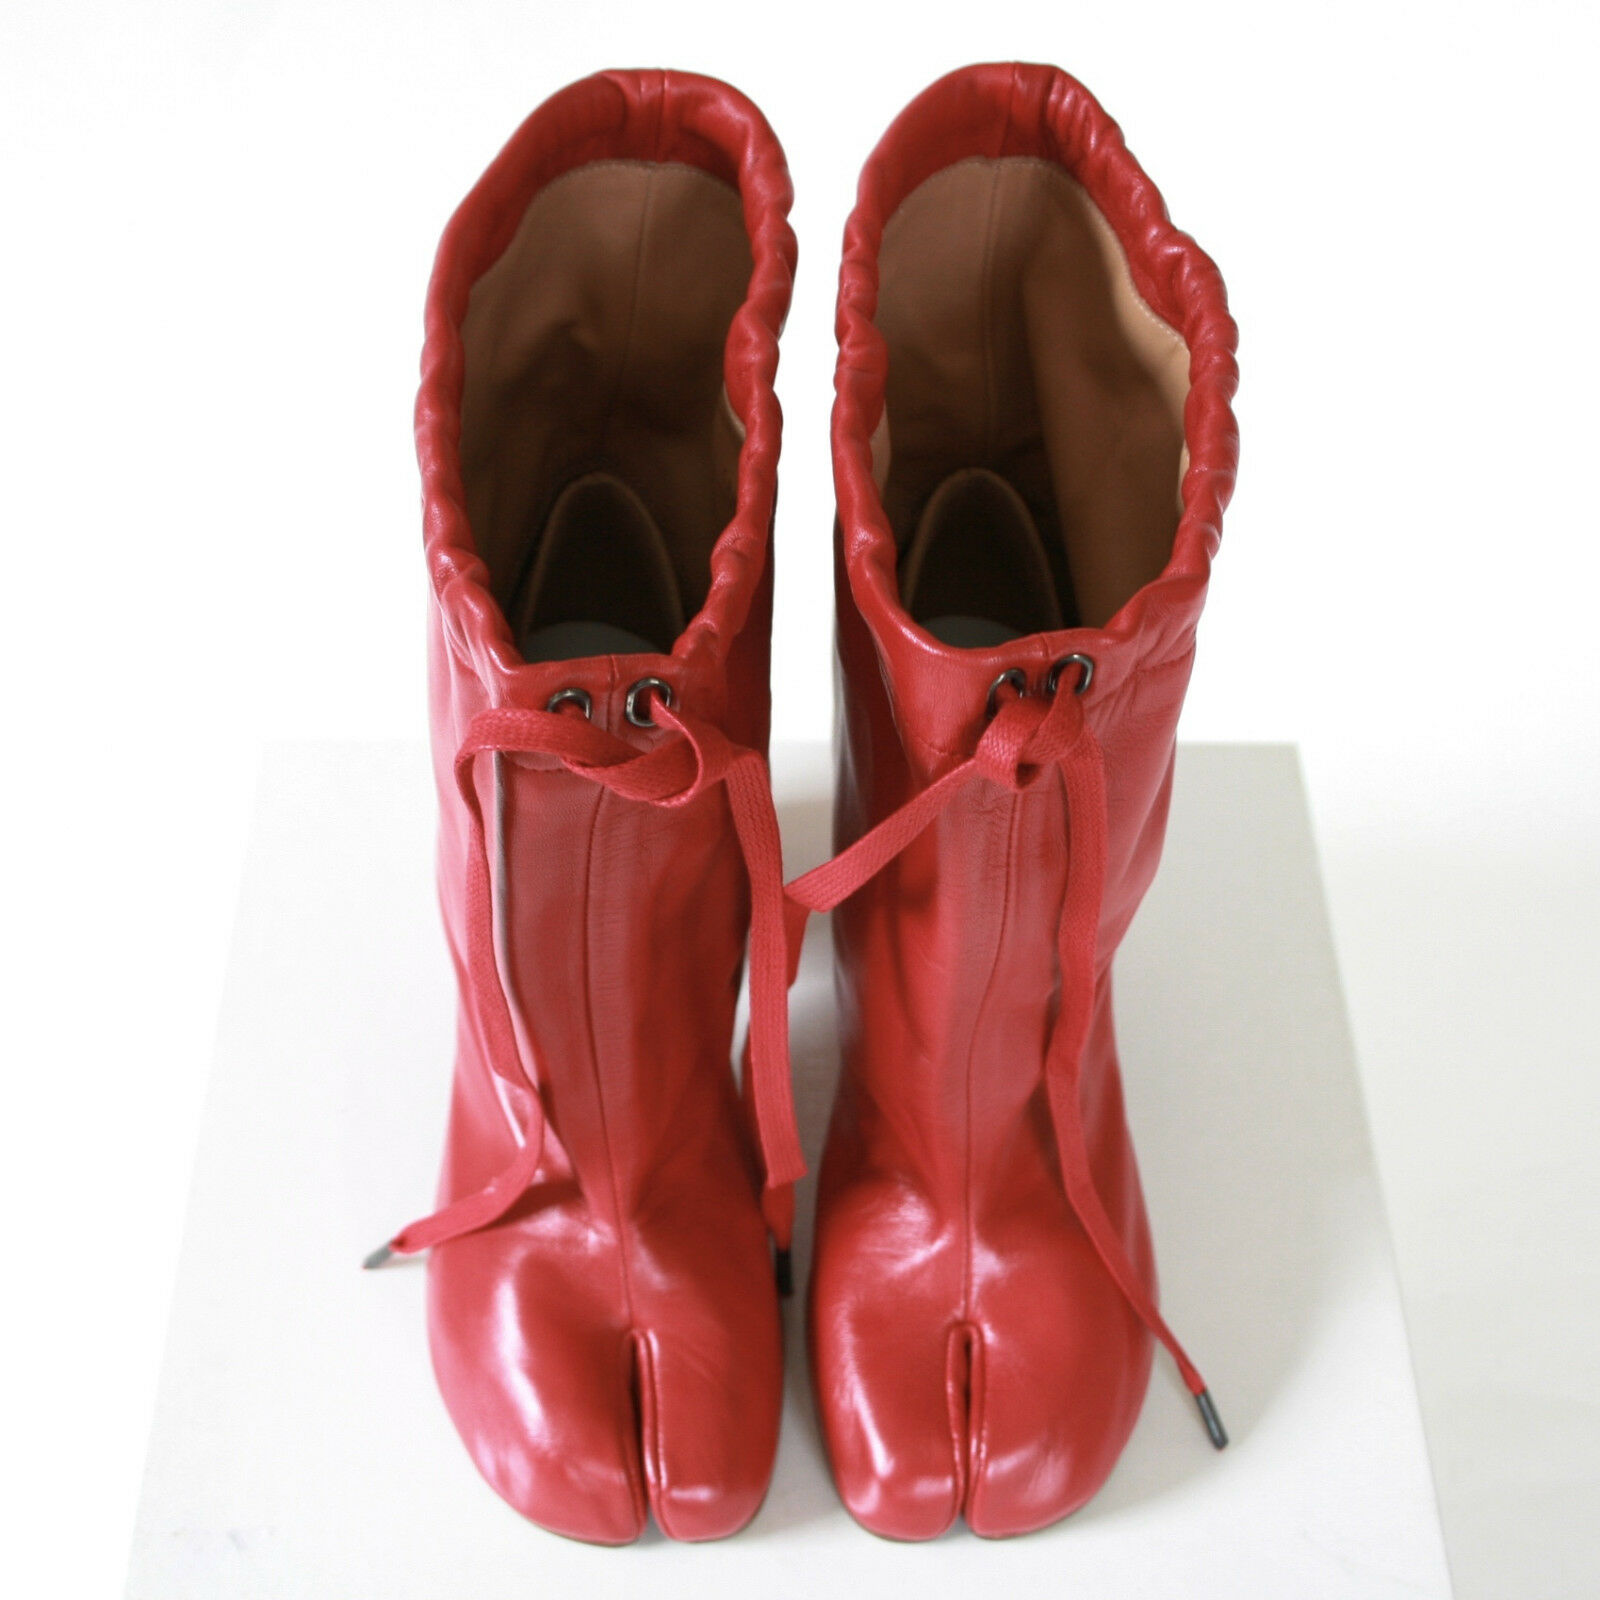 MAISON MARTIN MARGIELA split toe toe toe red leather high heel shoes tabi boots 37 NEW 378b19